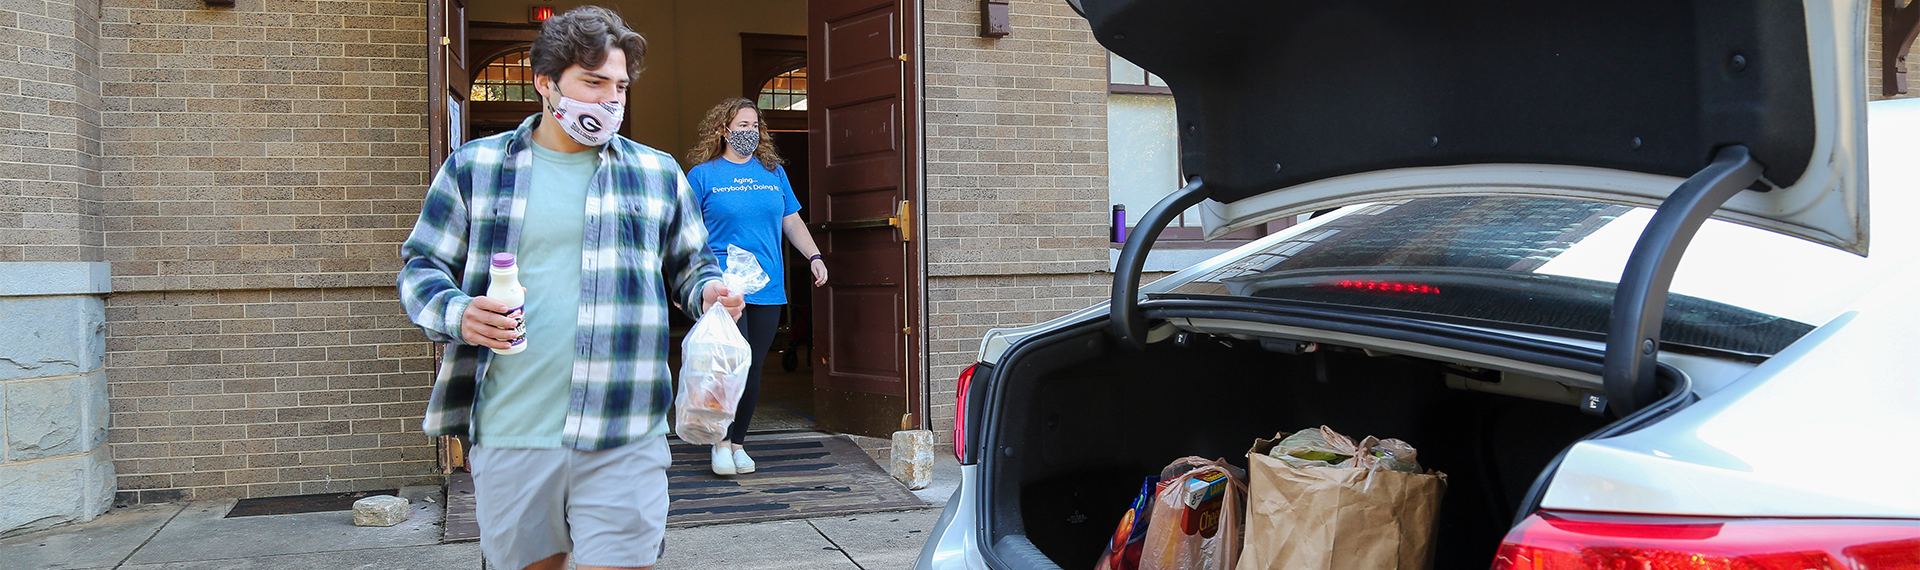 Volunteers load food into the back of a car